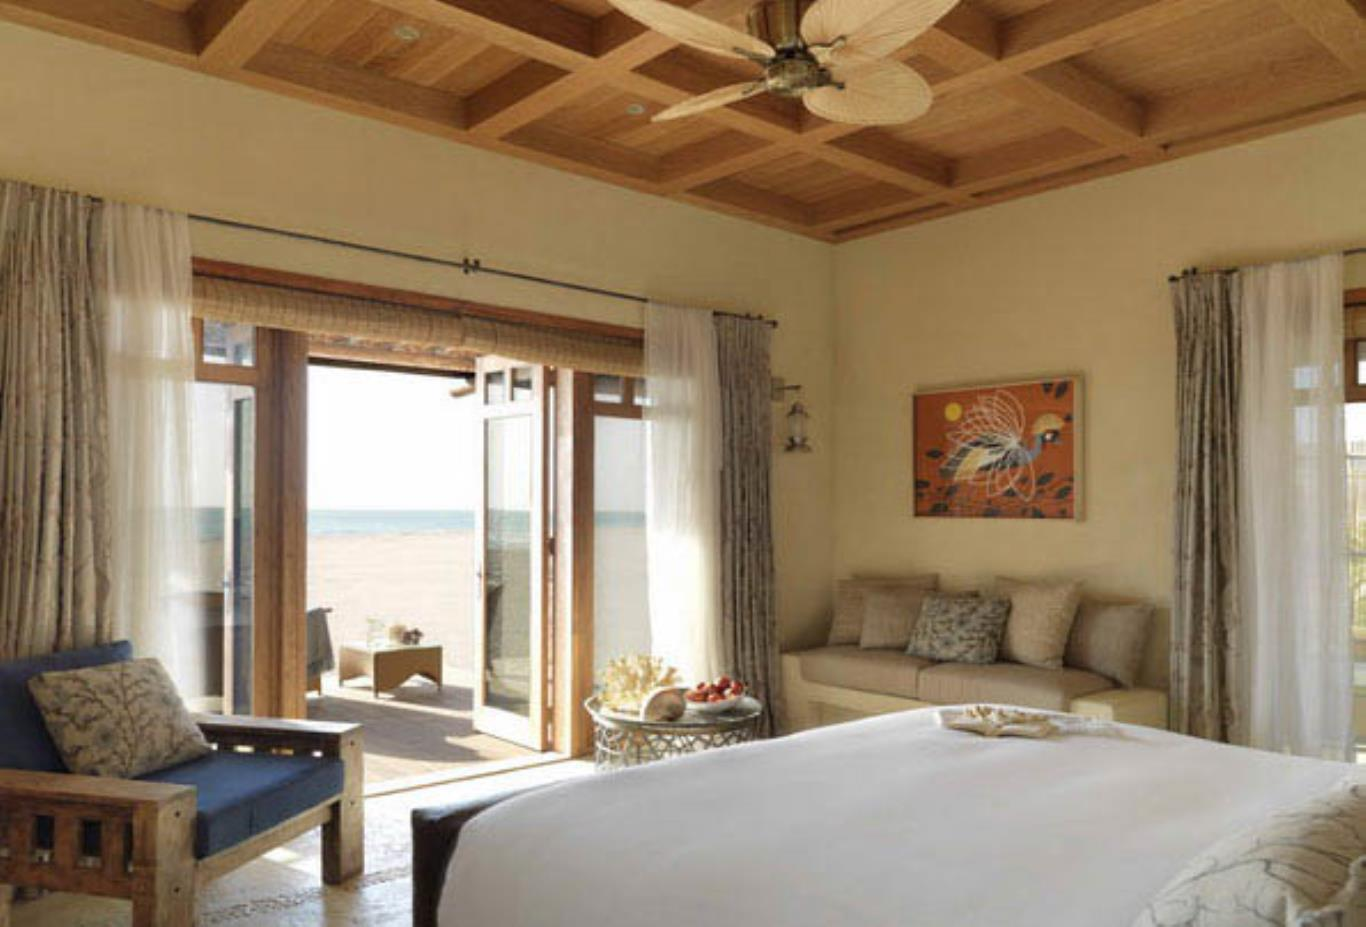 Rooms-One Bedroom Beach Villa-Living Room-nws